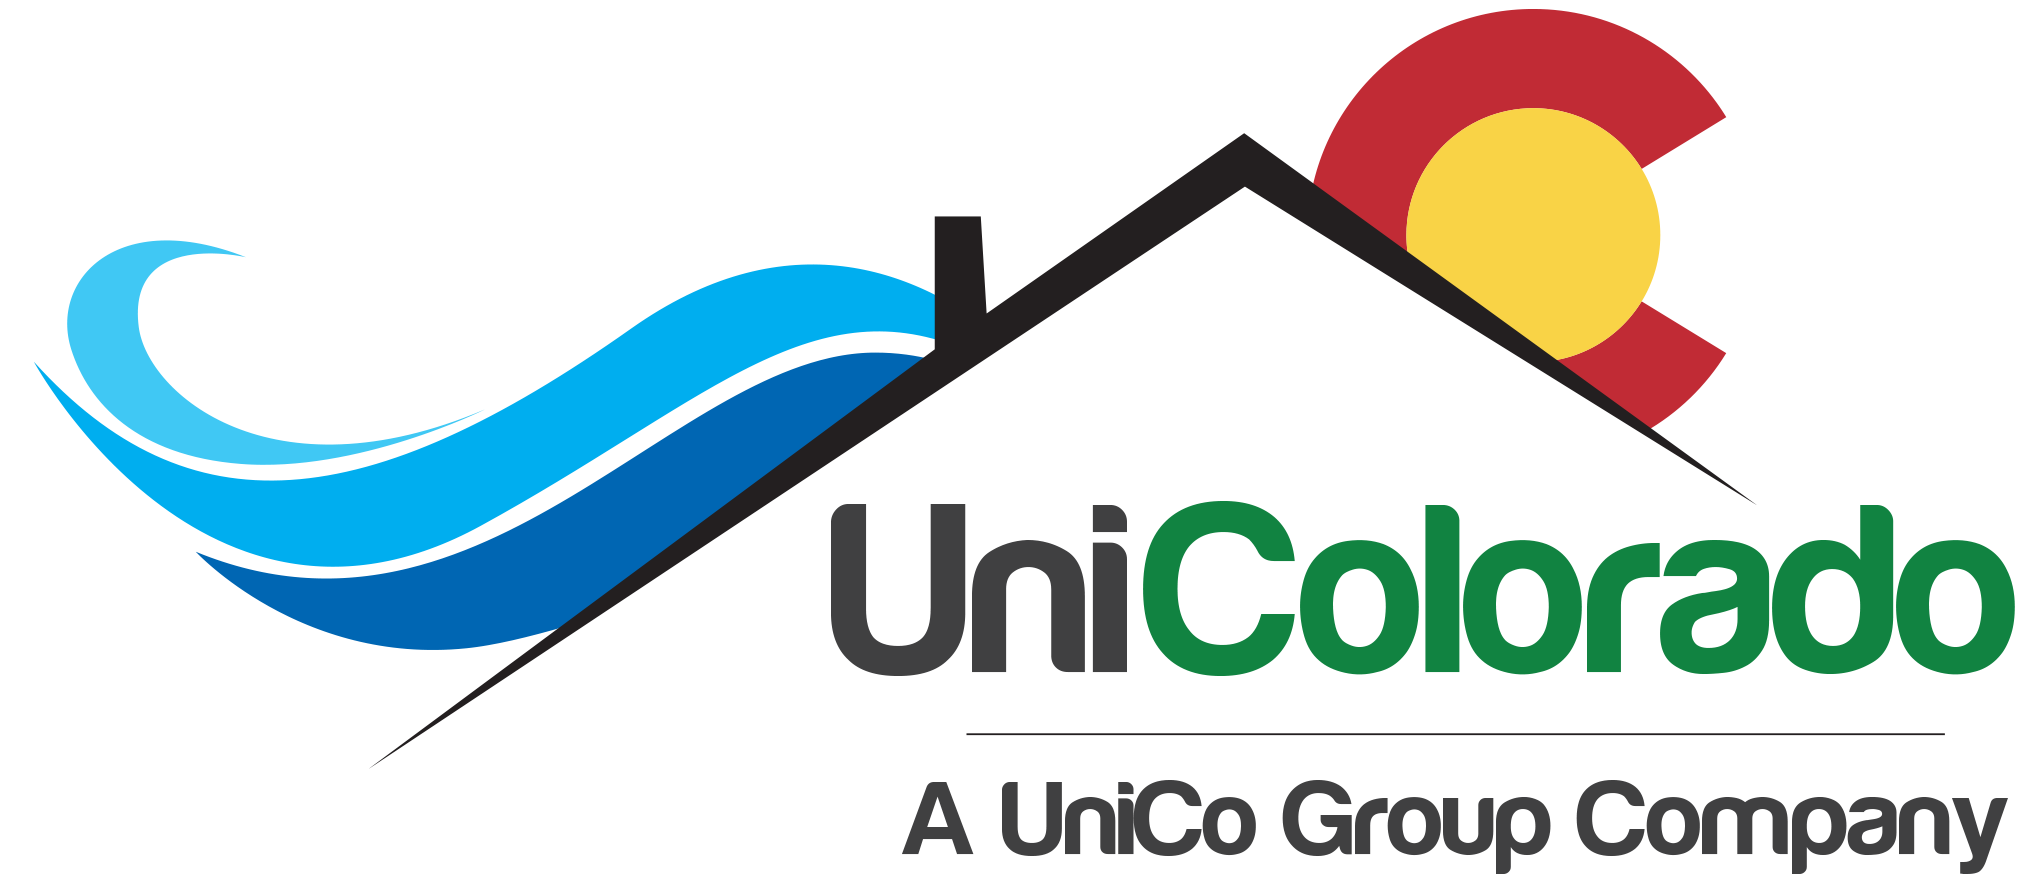 UniColorado Heating & Cooling - Denver HVAC Contractor